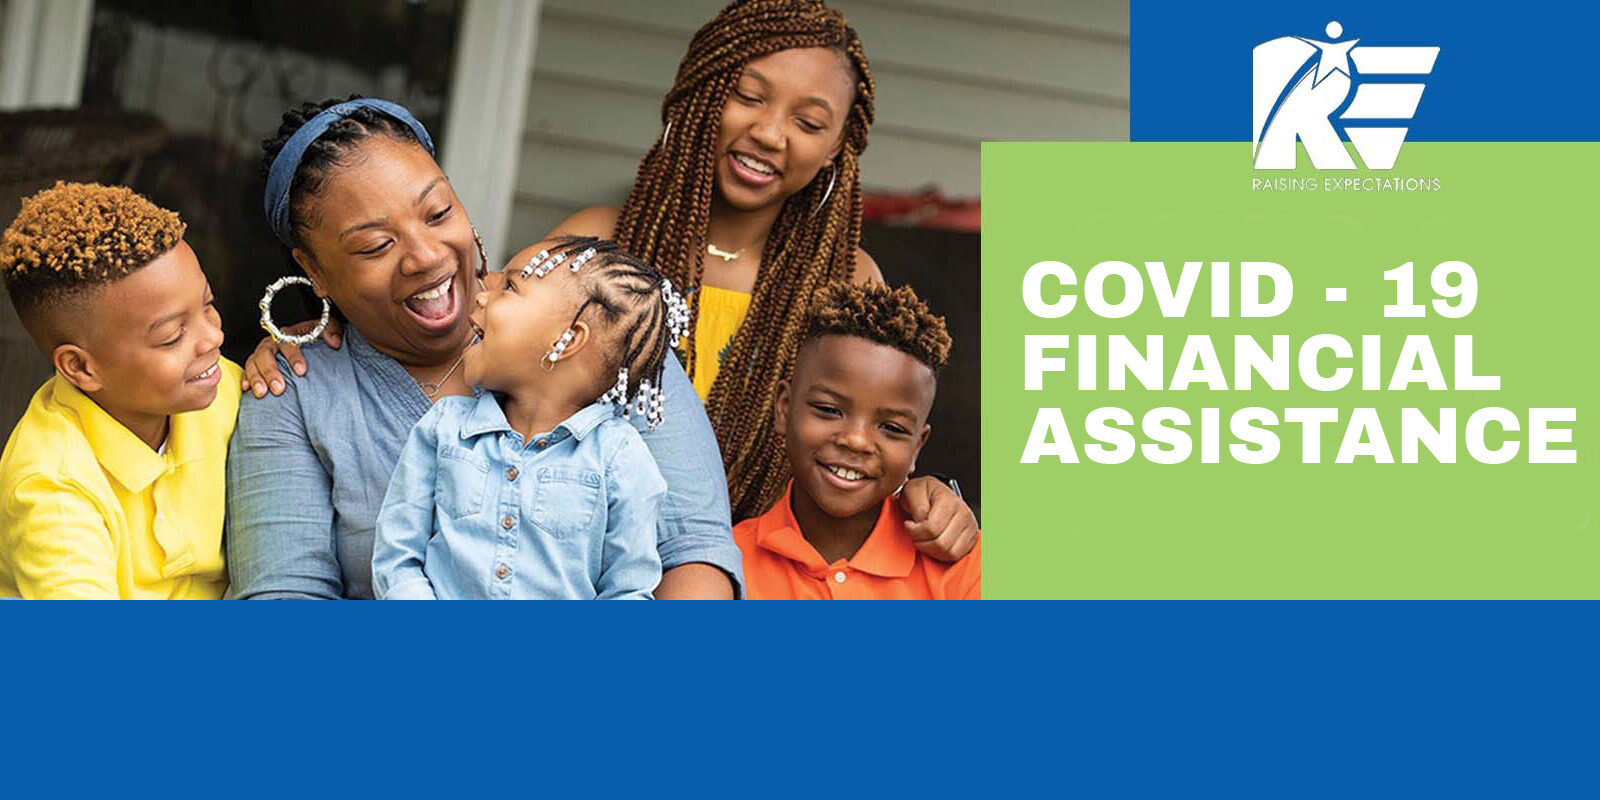 <strong>COVID-19 Financial Assistance</strong><br><br>Click here to learn more about the eligibility requirements to receive financial assistance.